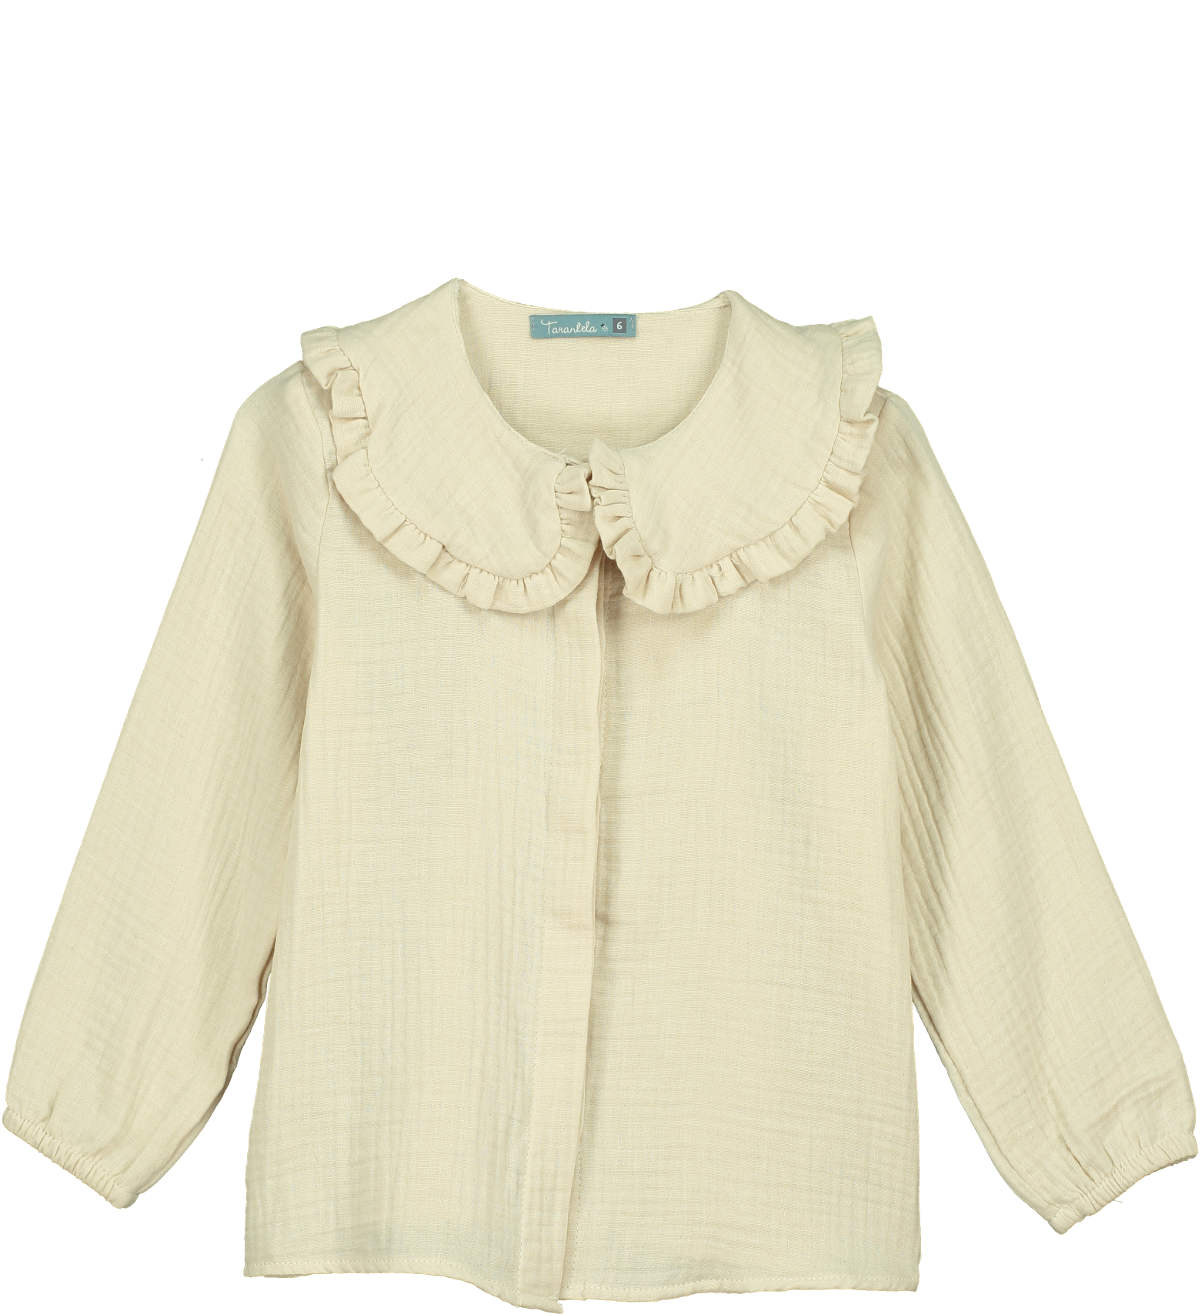 Tarantela Ivory Button Down Blouse